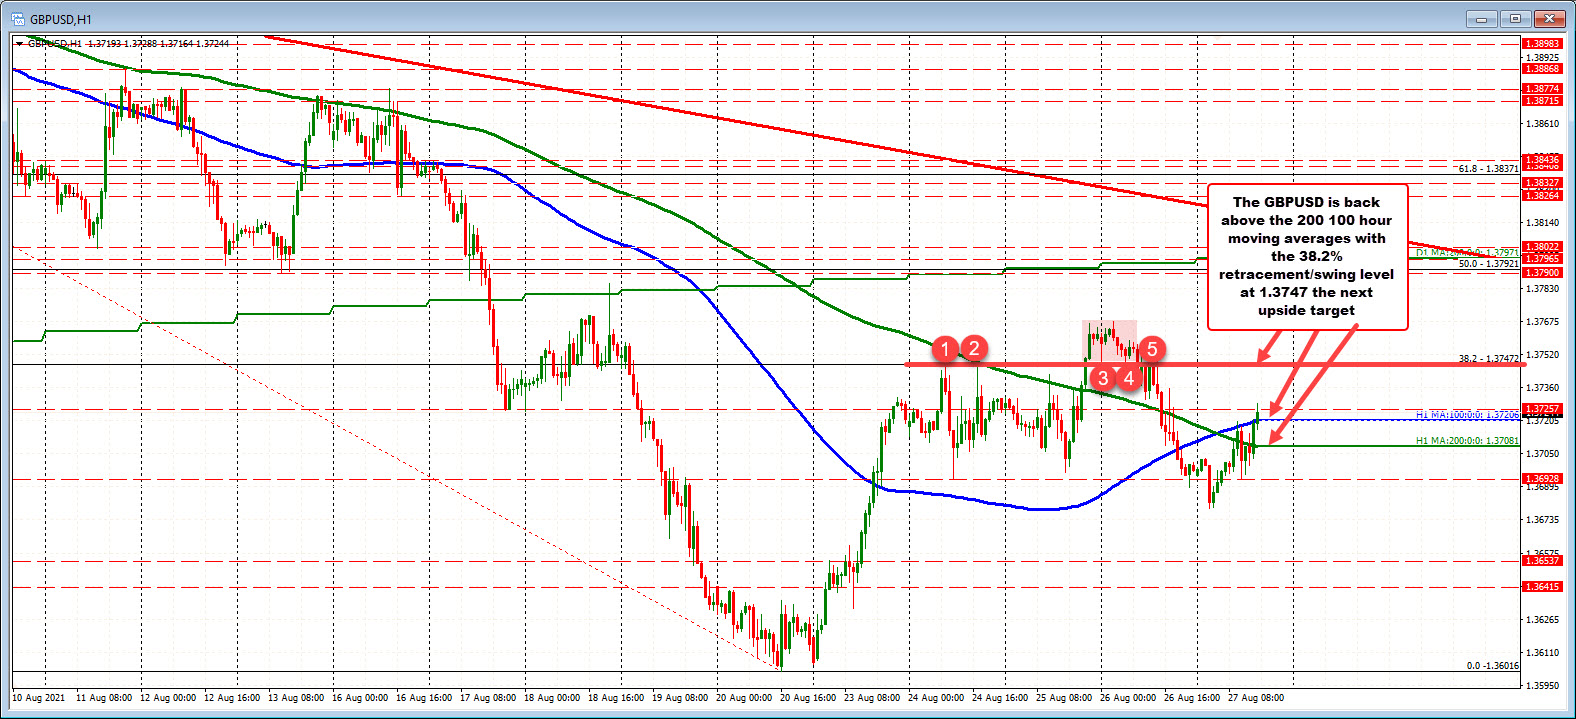 Choppy up and down price action